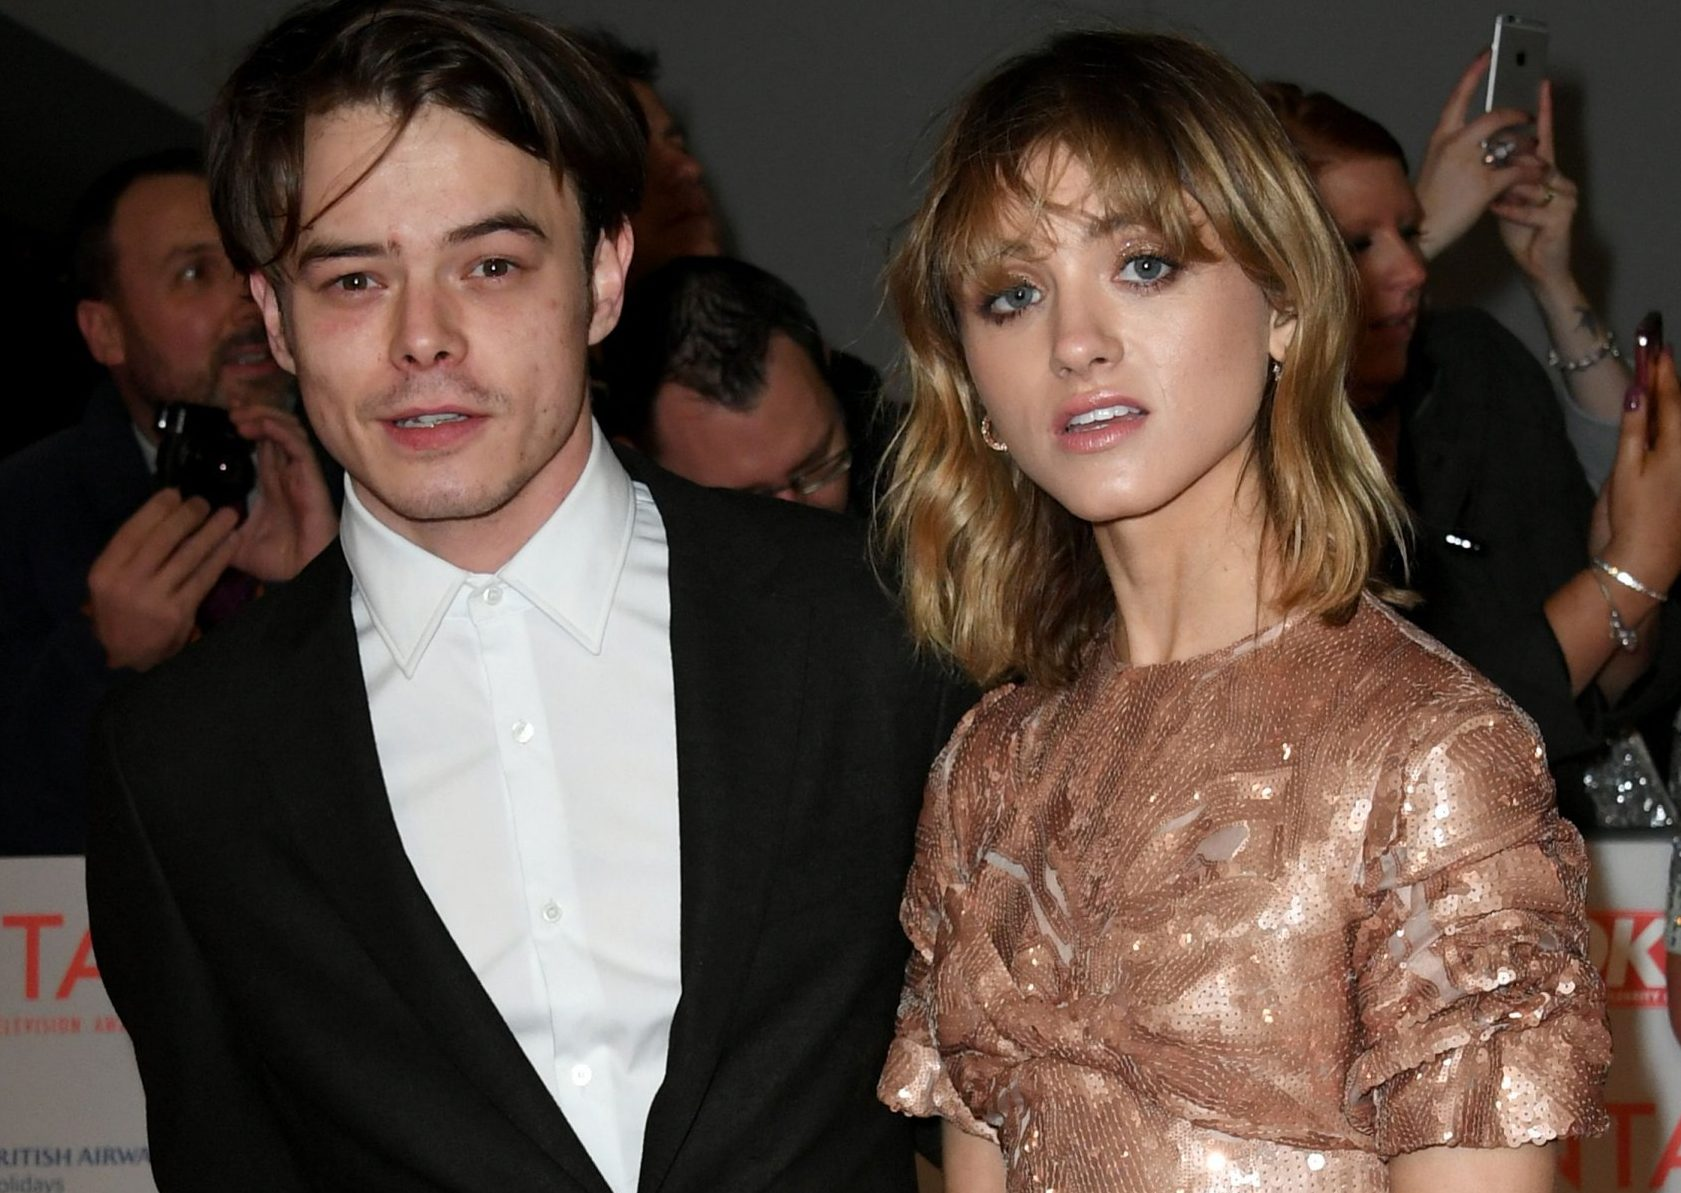 Stranger Things star Charlie Heaton attends NTAs with Natalia Dyer after missing SAG Awards